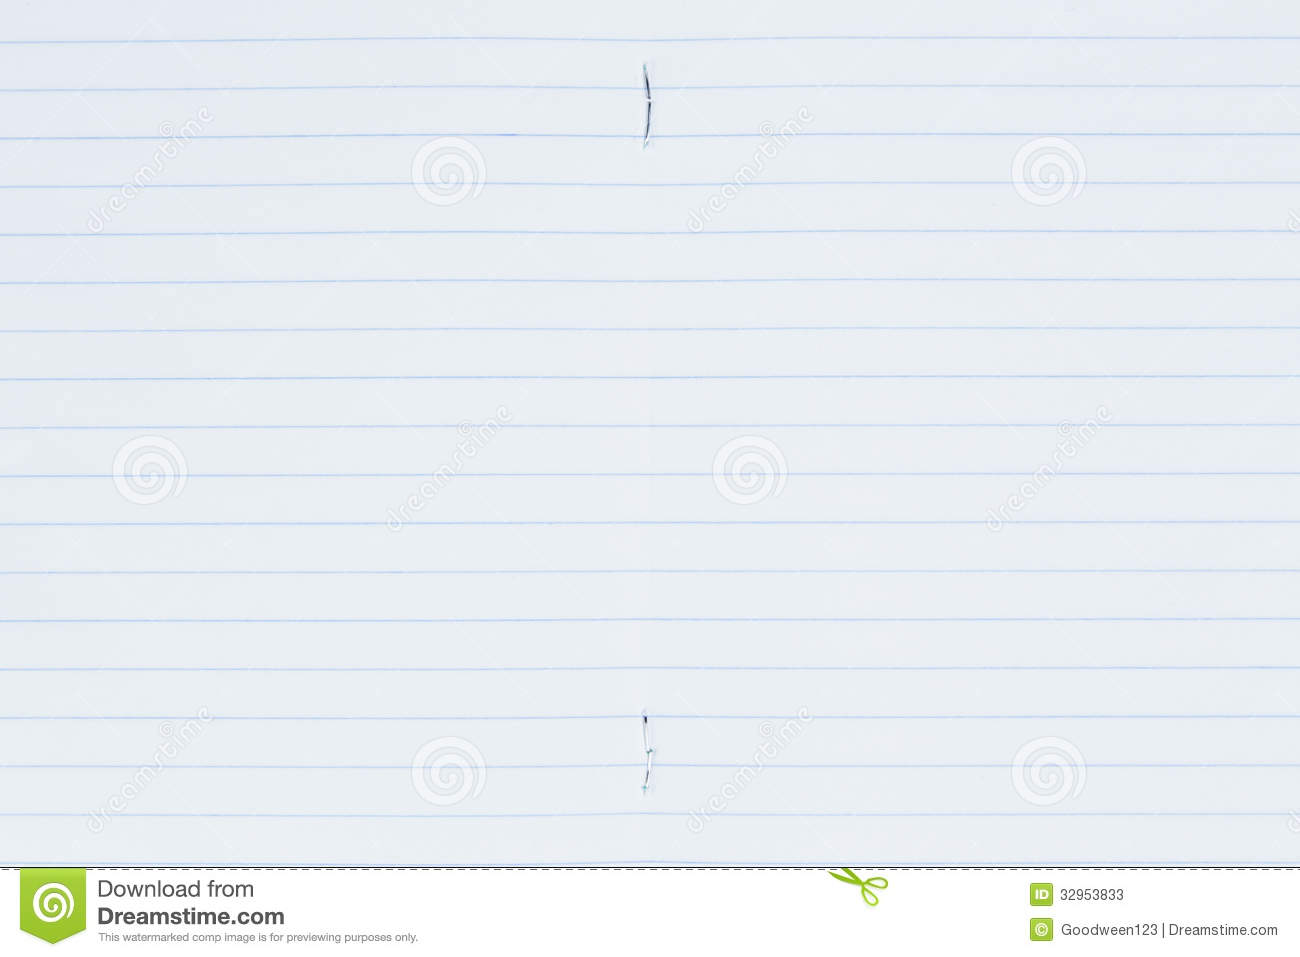 5 by 8 index card template - lined paper page stock image image of notepaper page